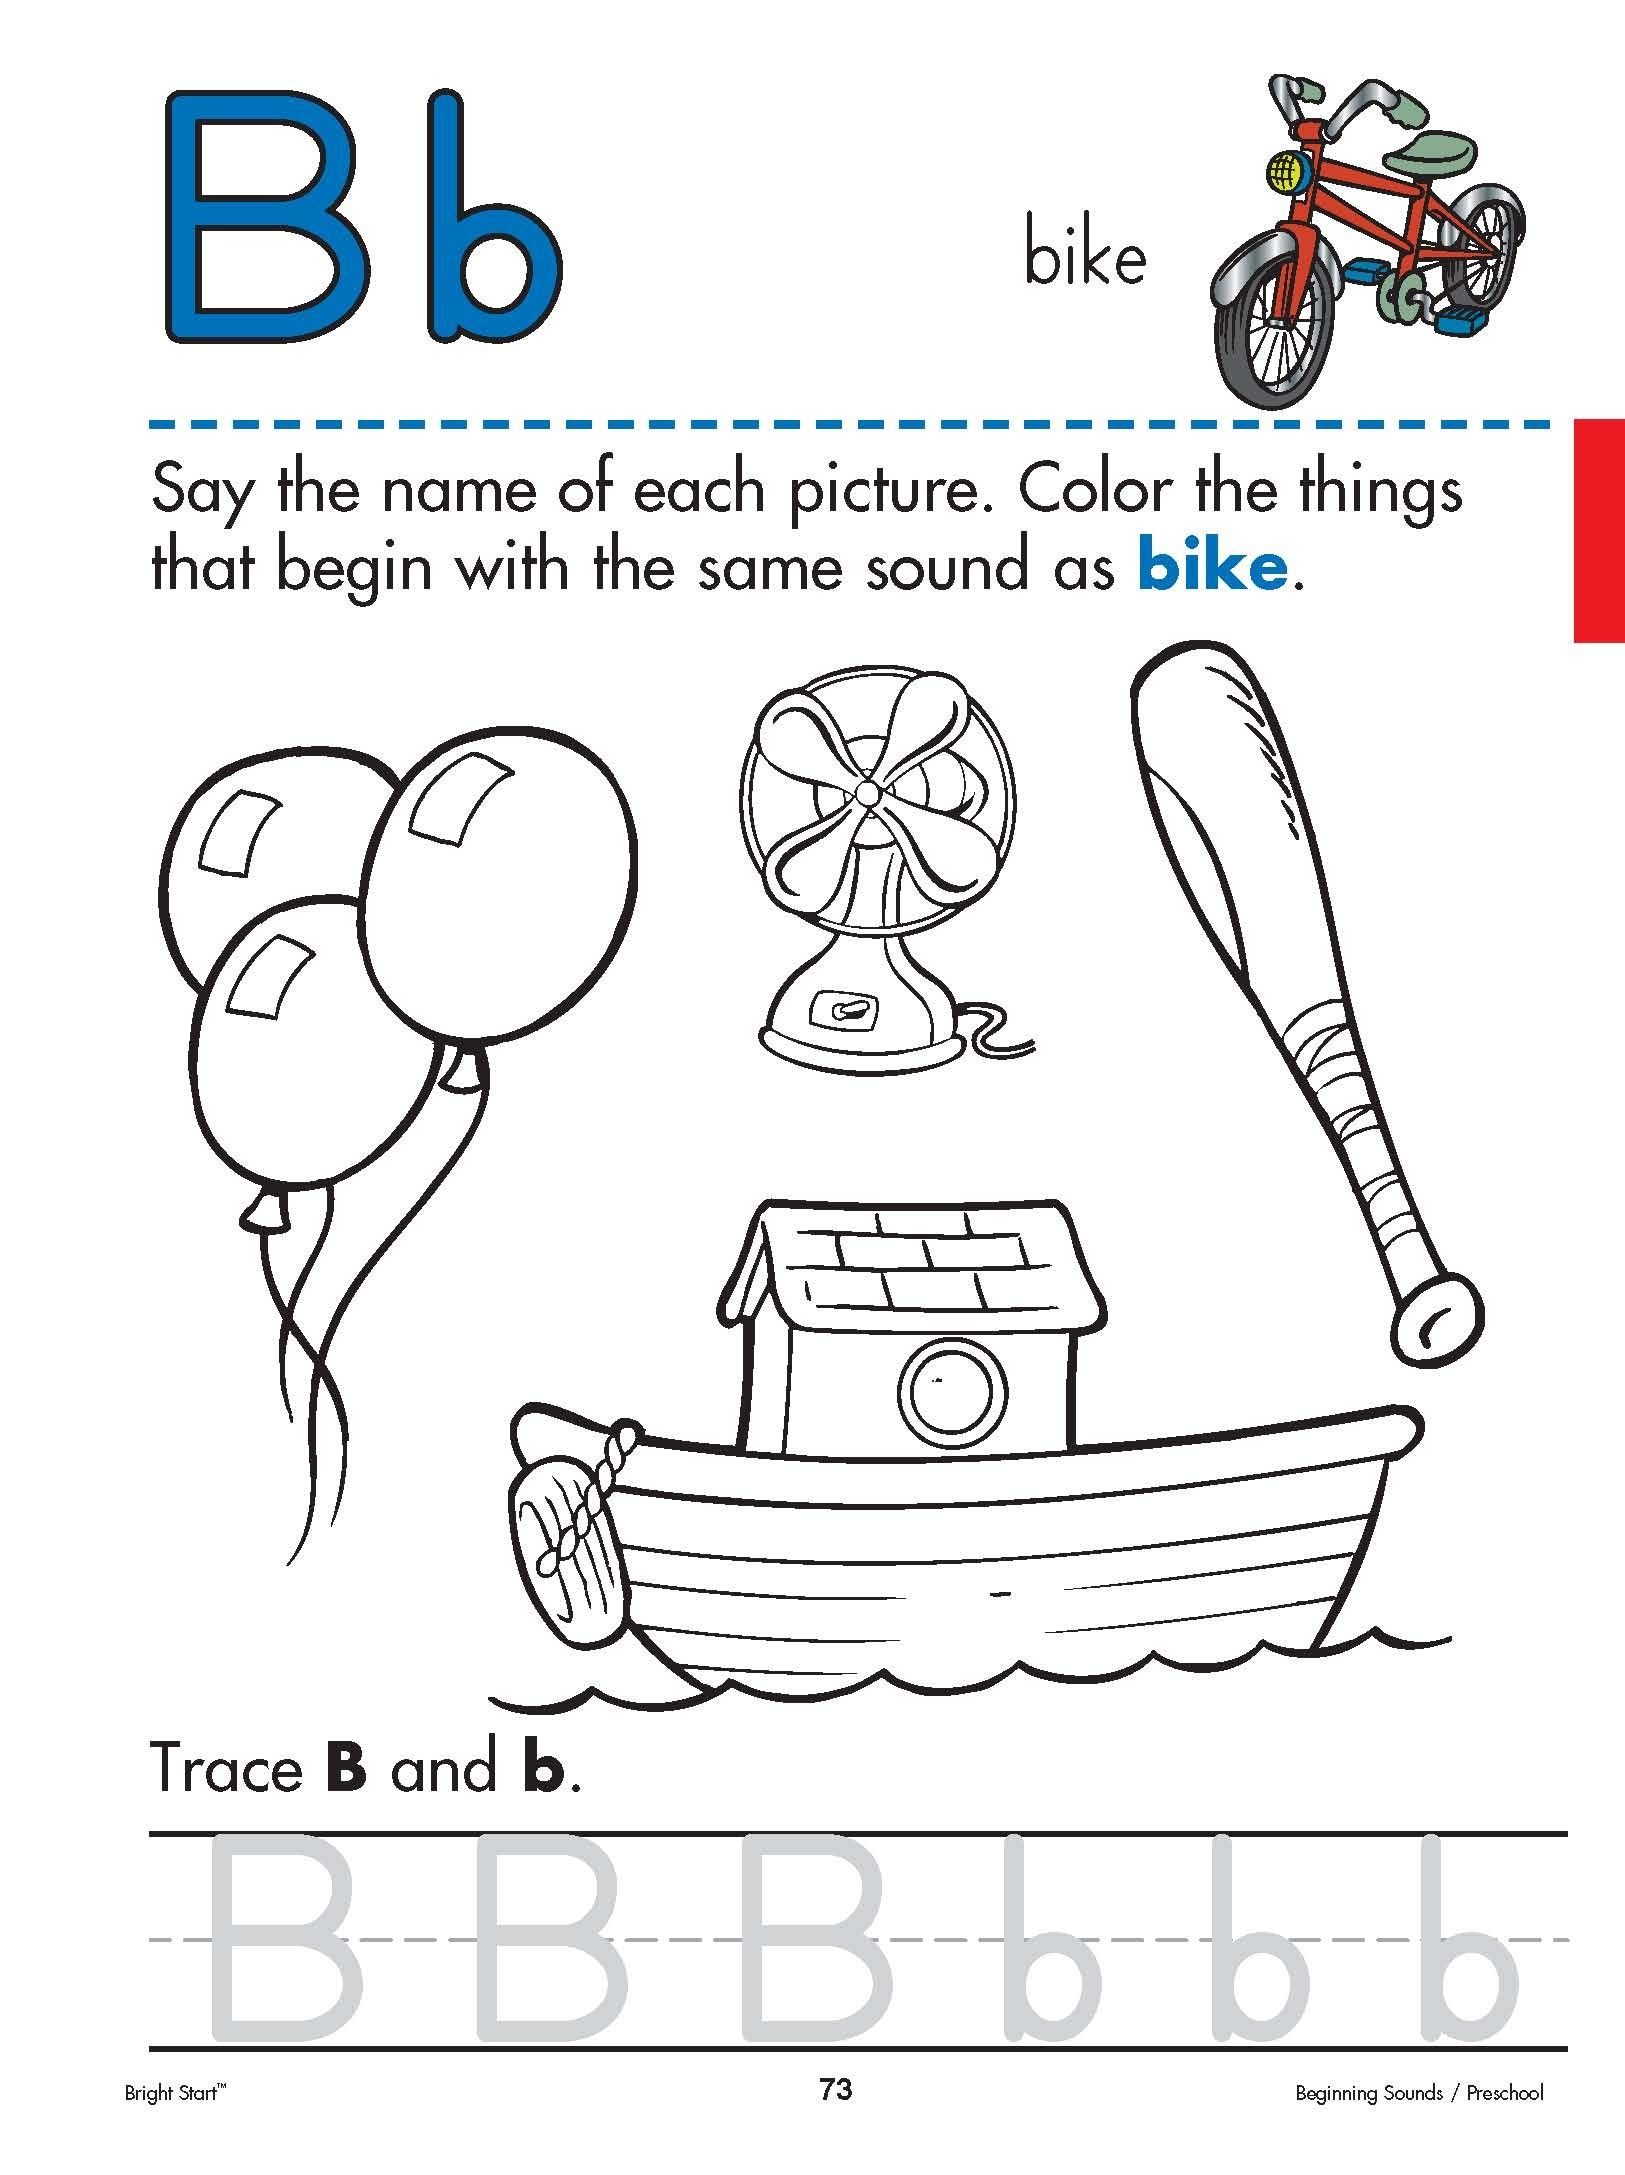 L sound coloring pages - Print Trace And Color The Letter B Reinforce Your Preschool Child S